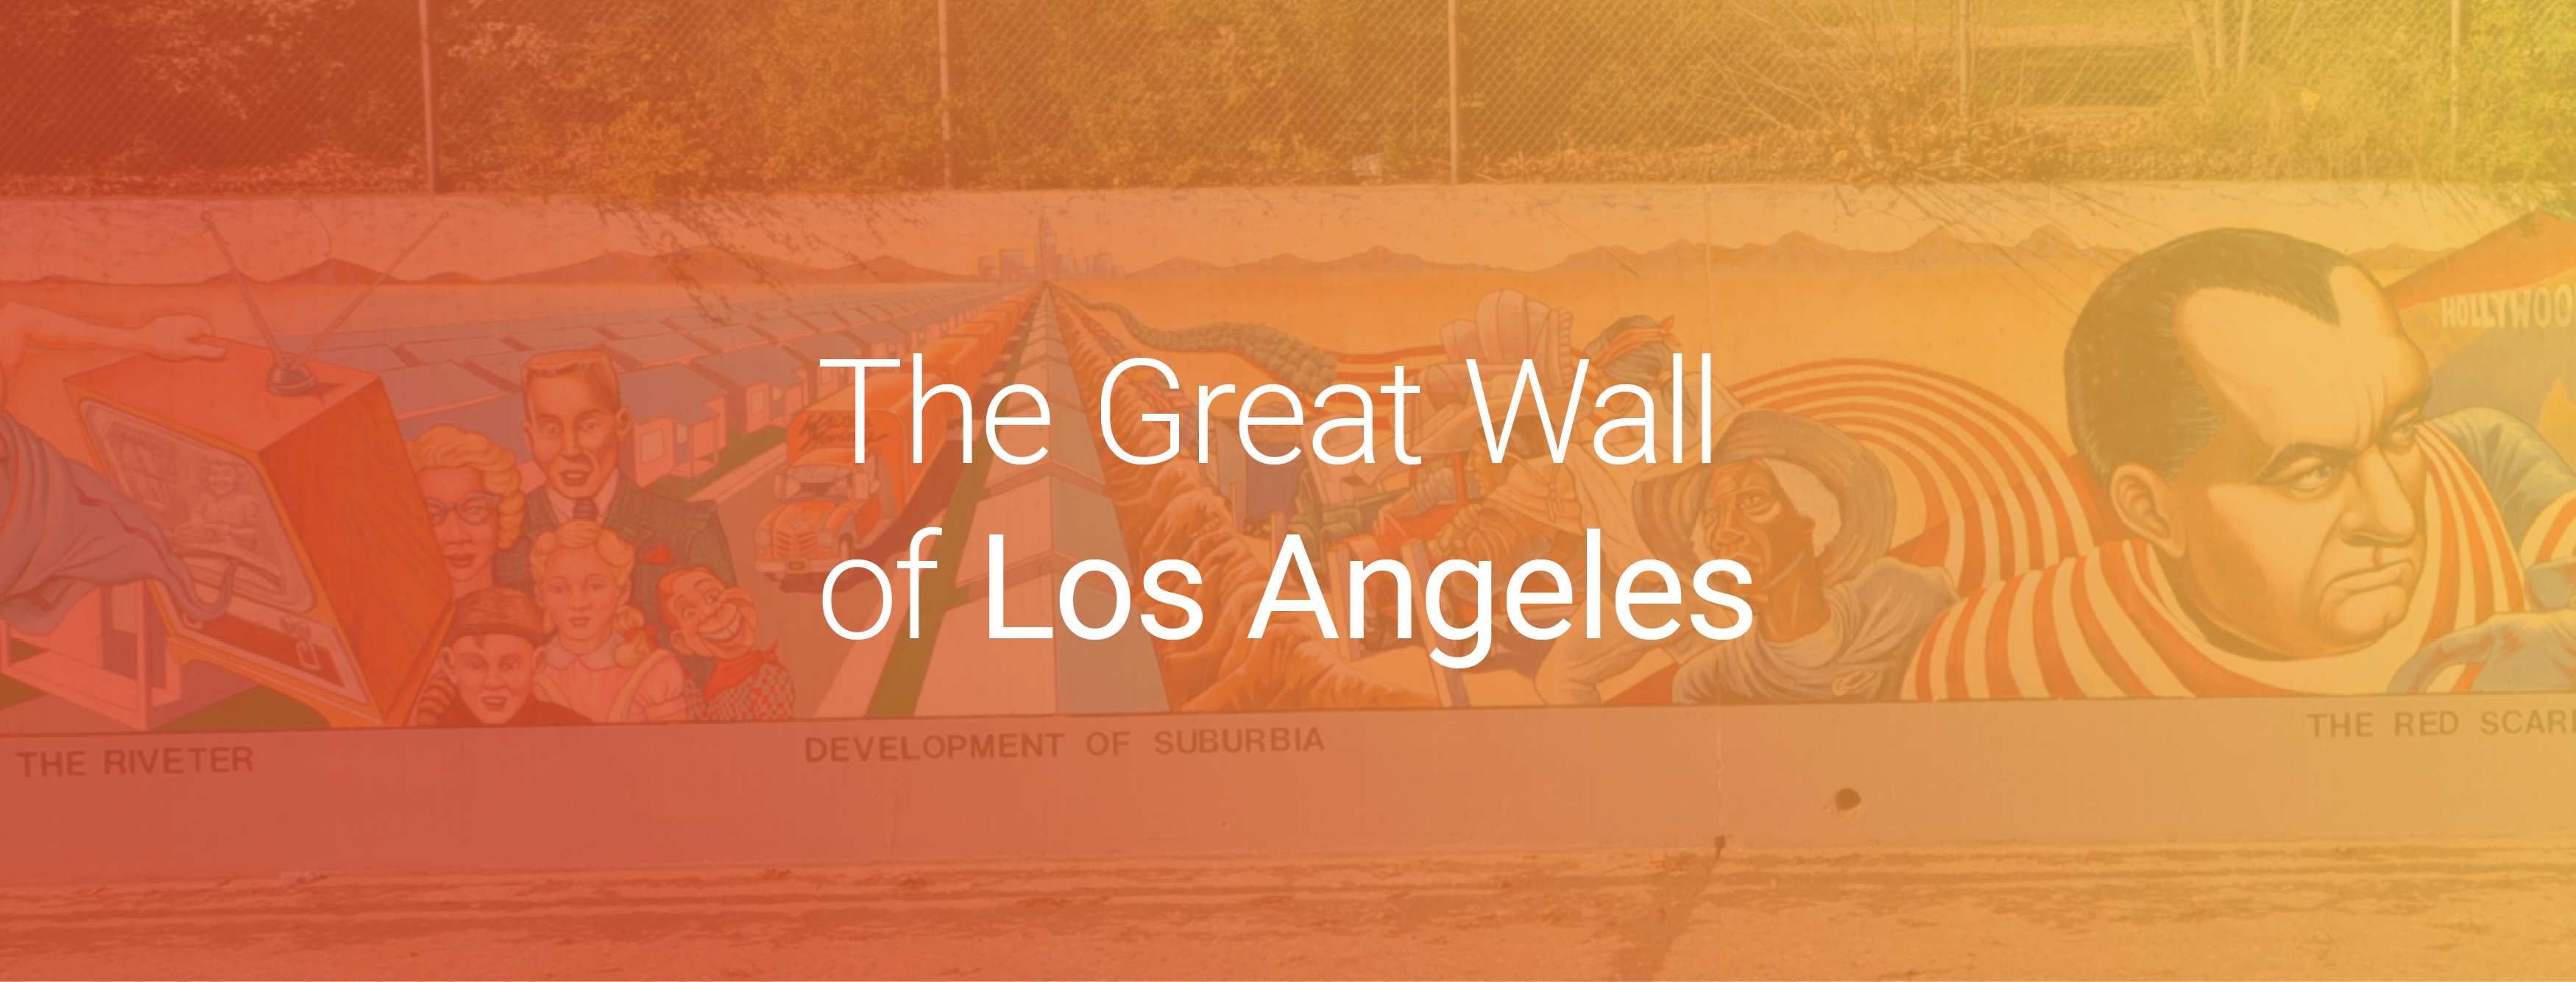 The Great Wall of Los Angeles Cover